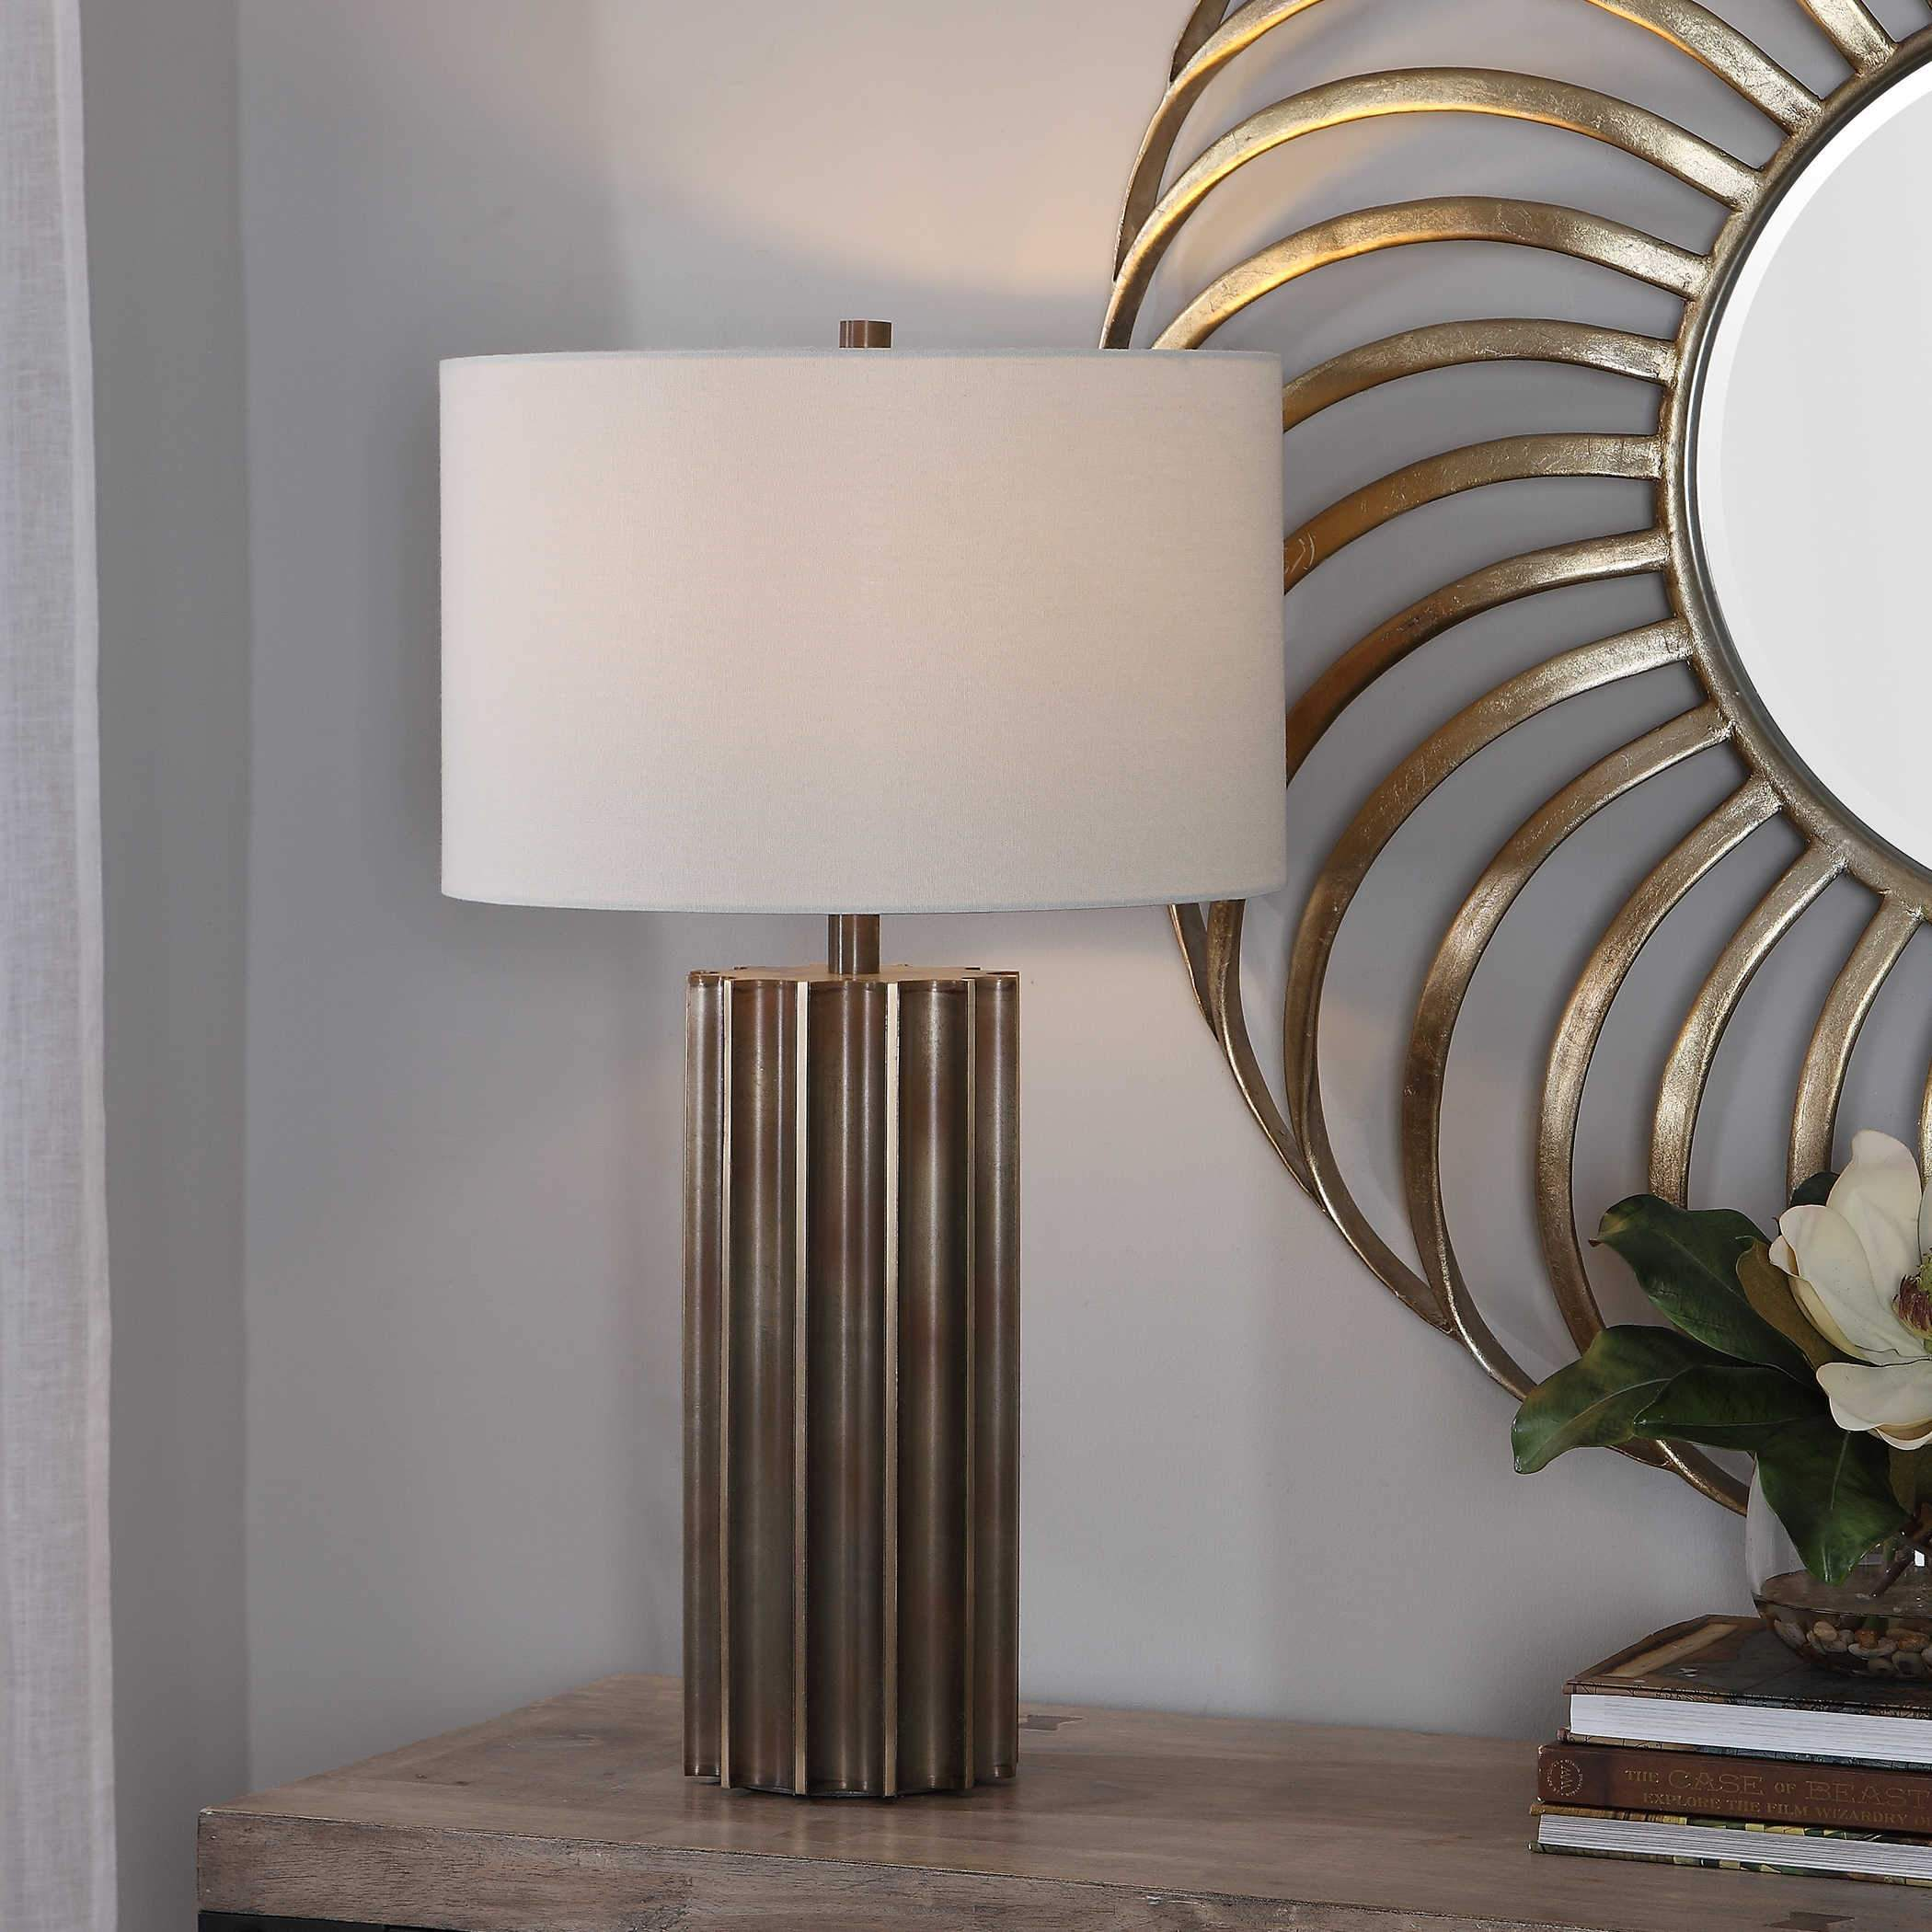 Uttermost Khalio Table Lamp; AVAIL: JUN 02, 2021